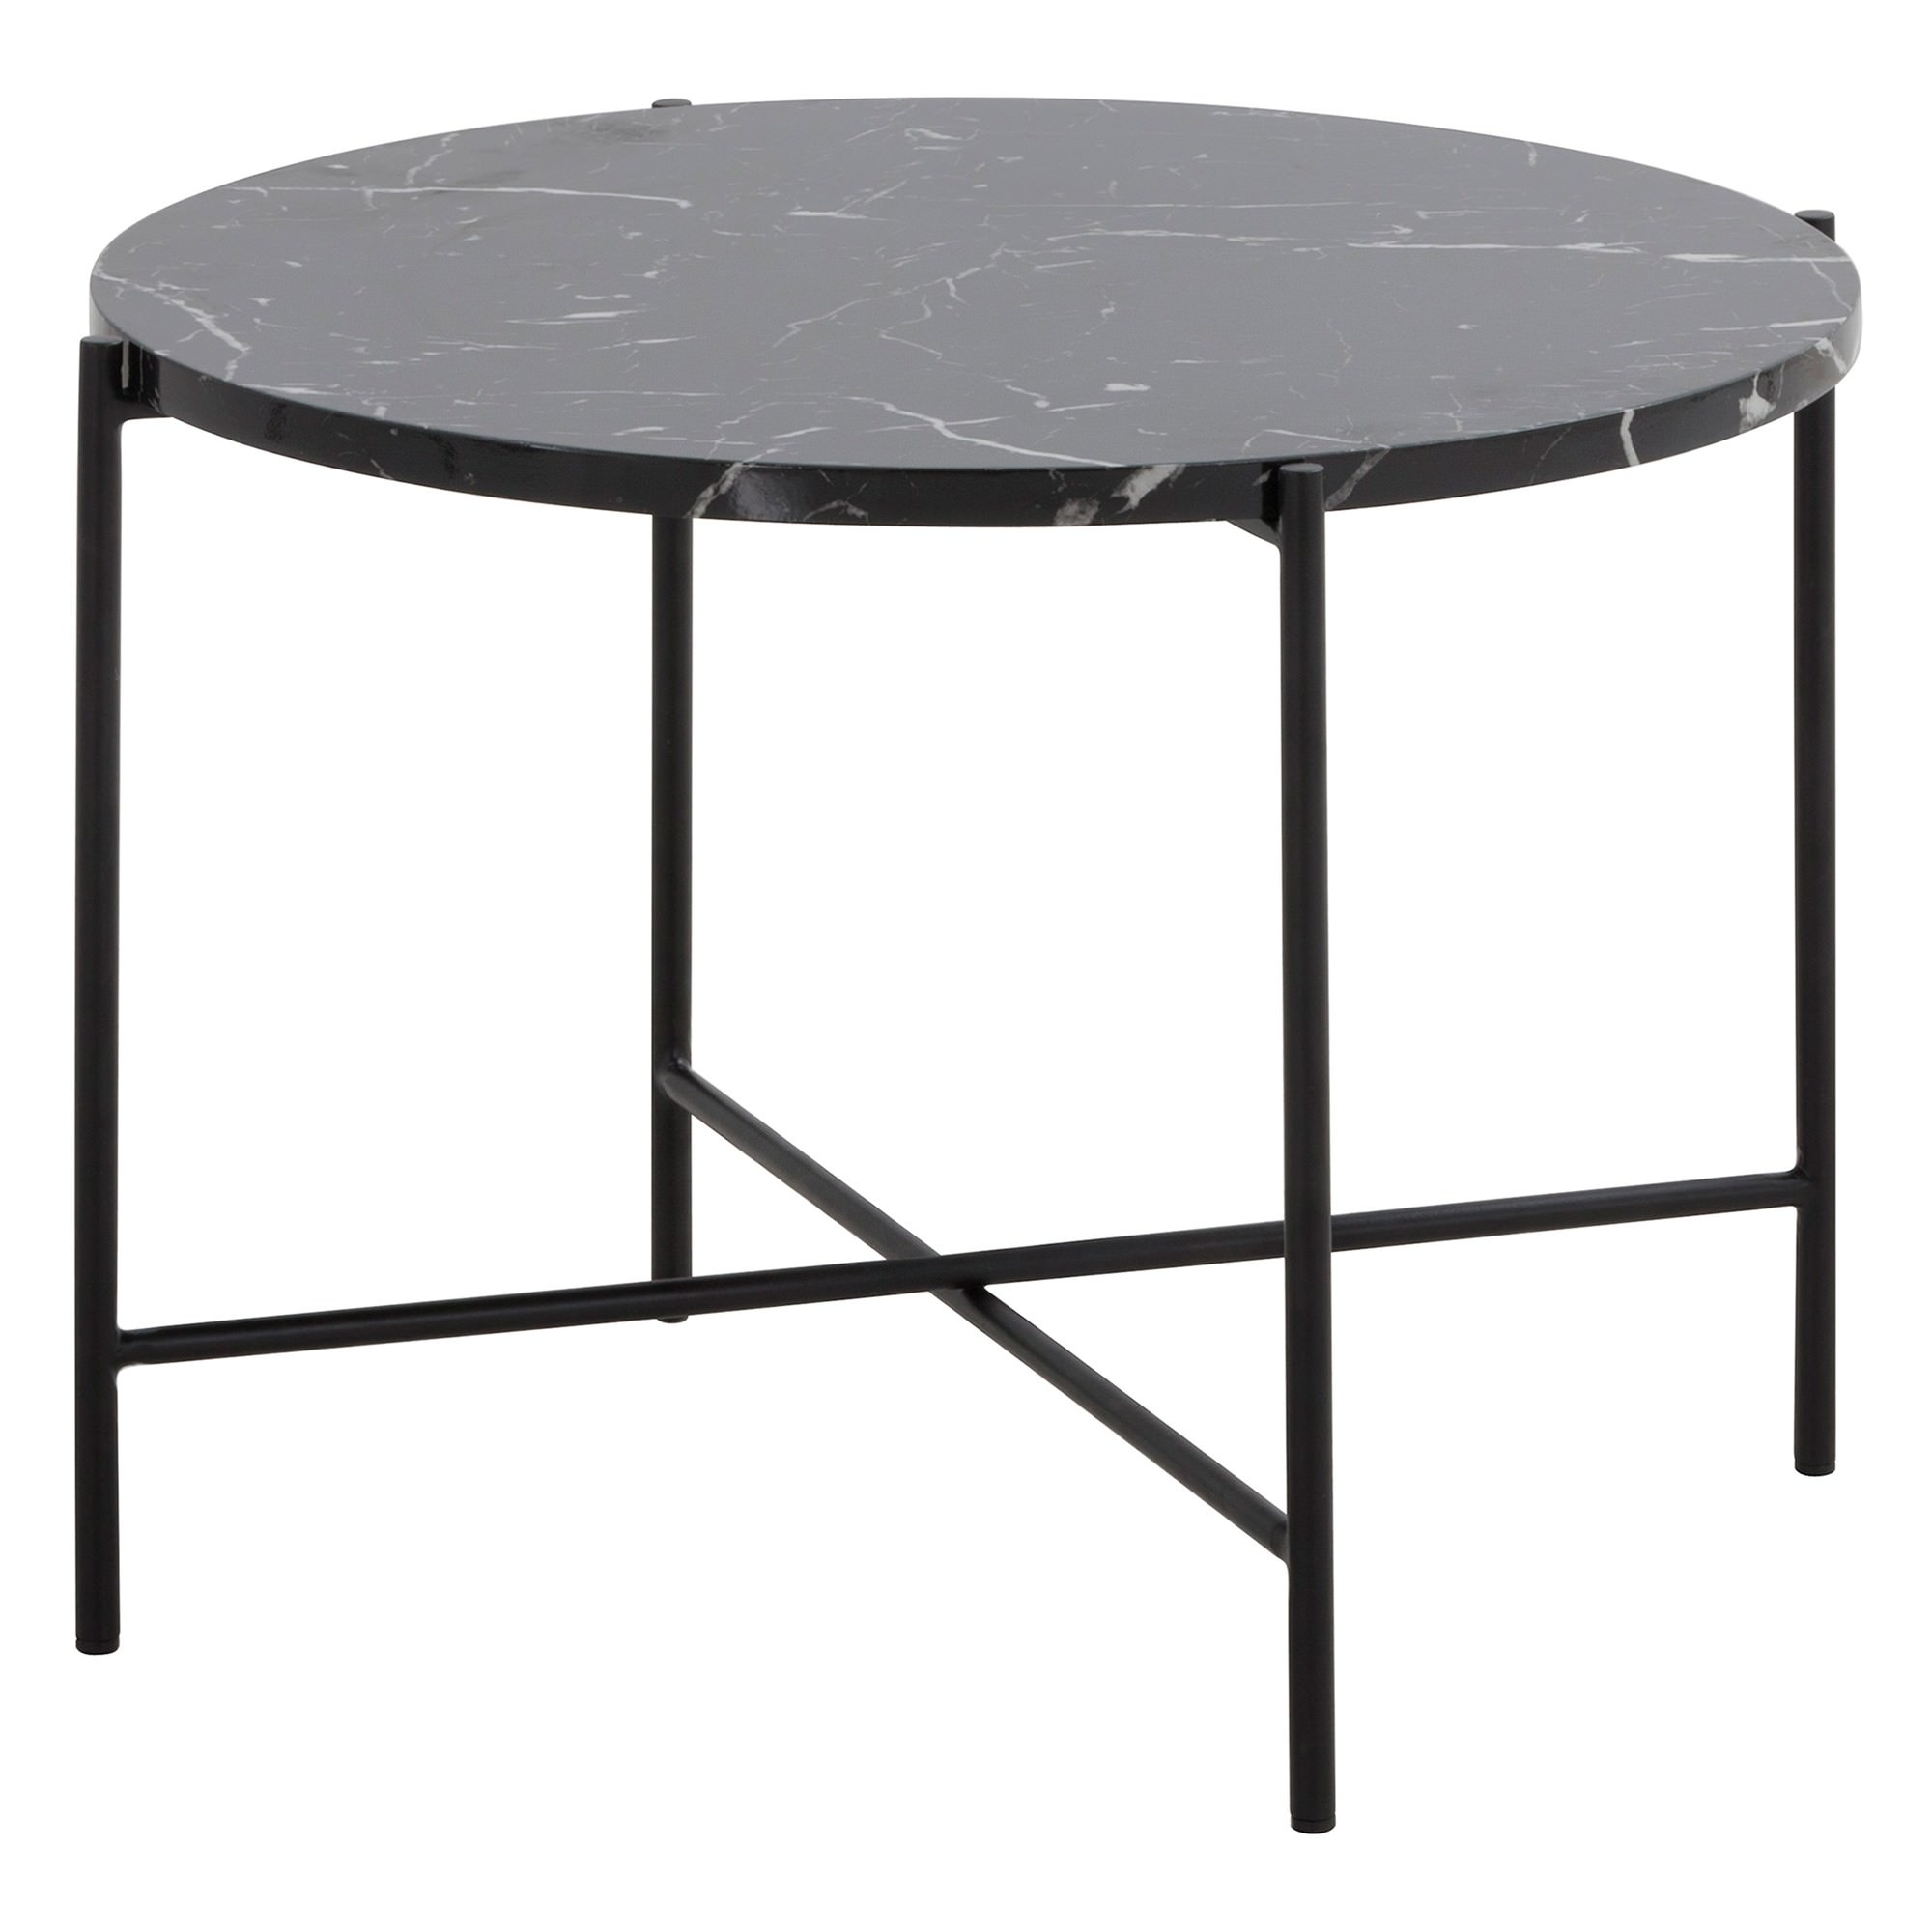 Jaden Round Side Table, Large